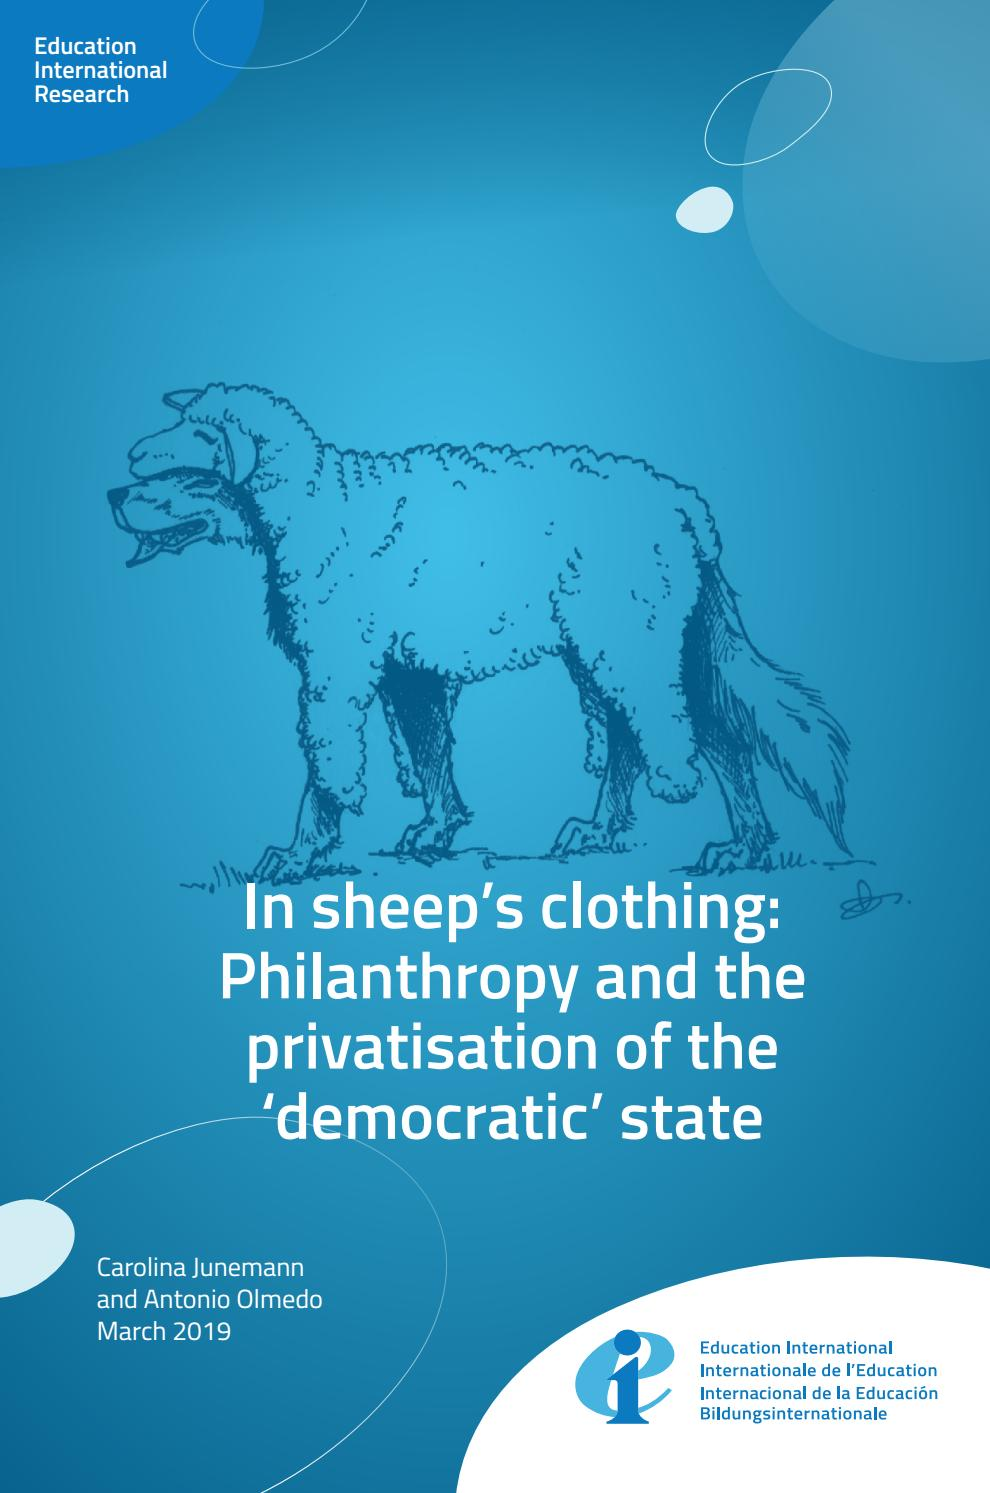 issuu.com - In sheep's clothing: Philanthropy and the privatisation of the 'democratic' state